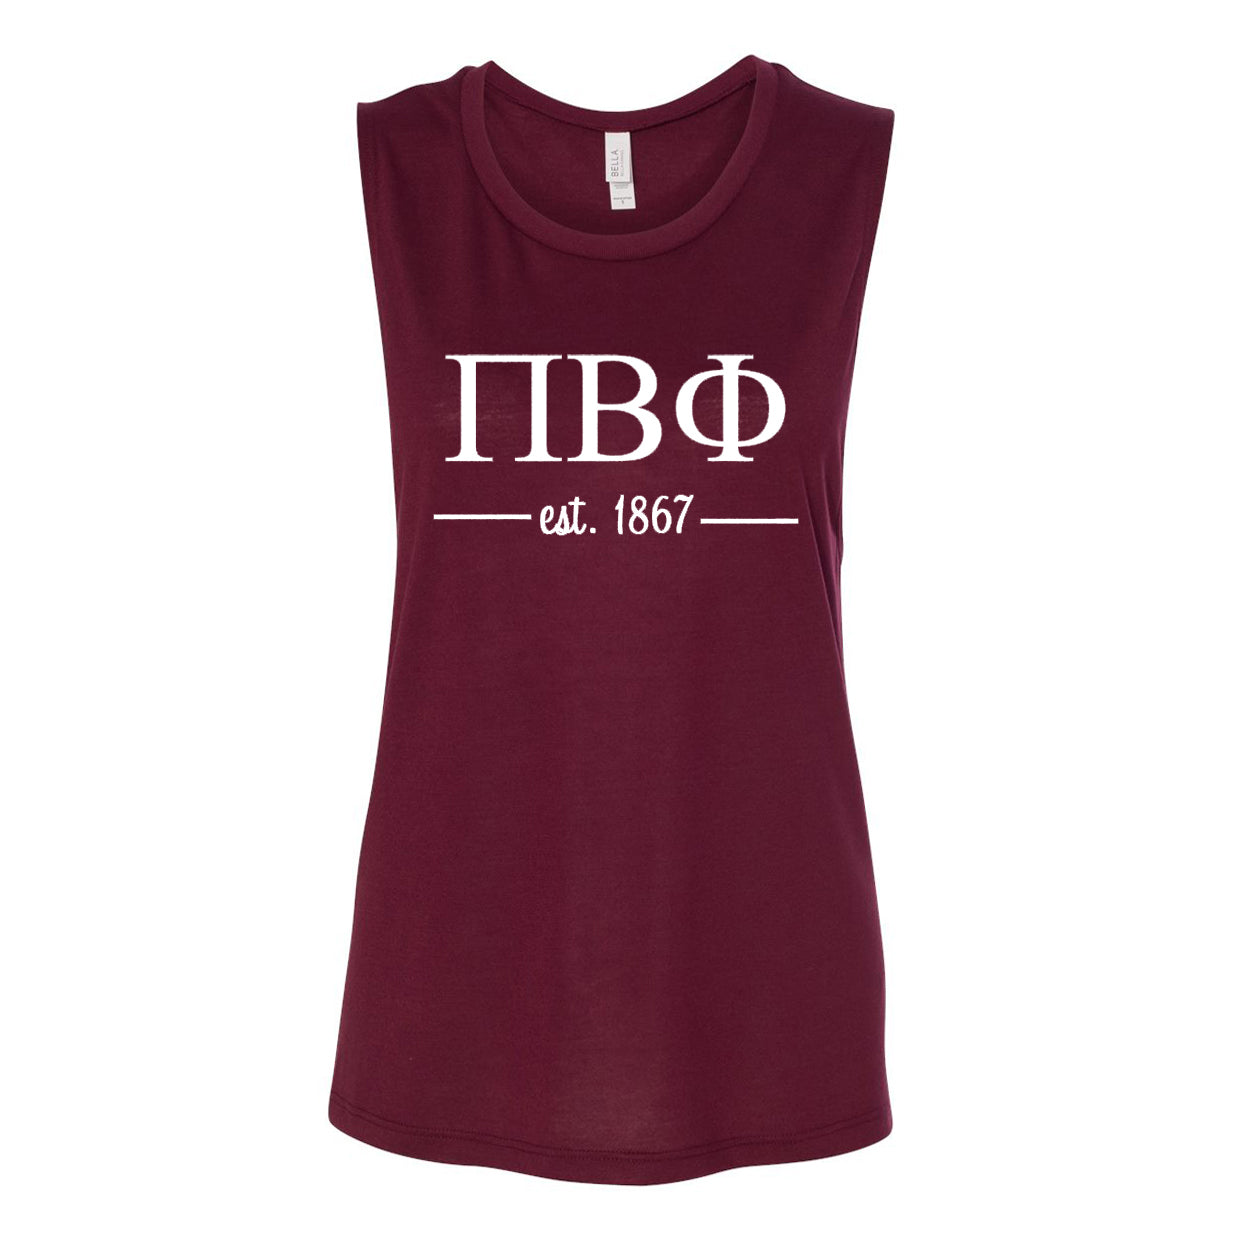 Pi Beta Phi Sleeveless Tee with Est. 1867